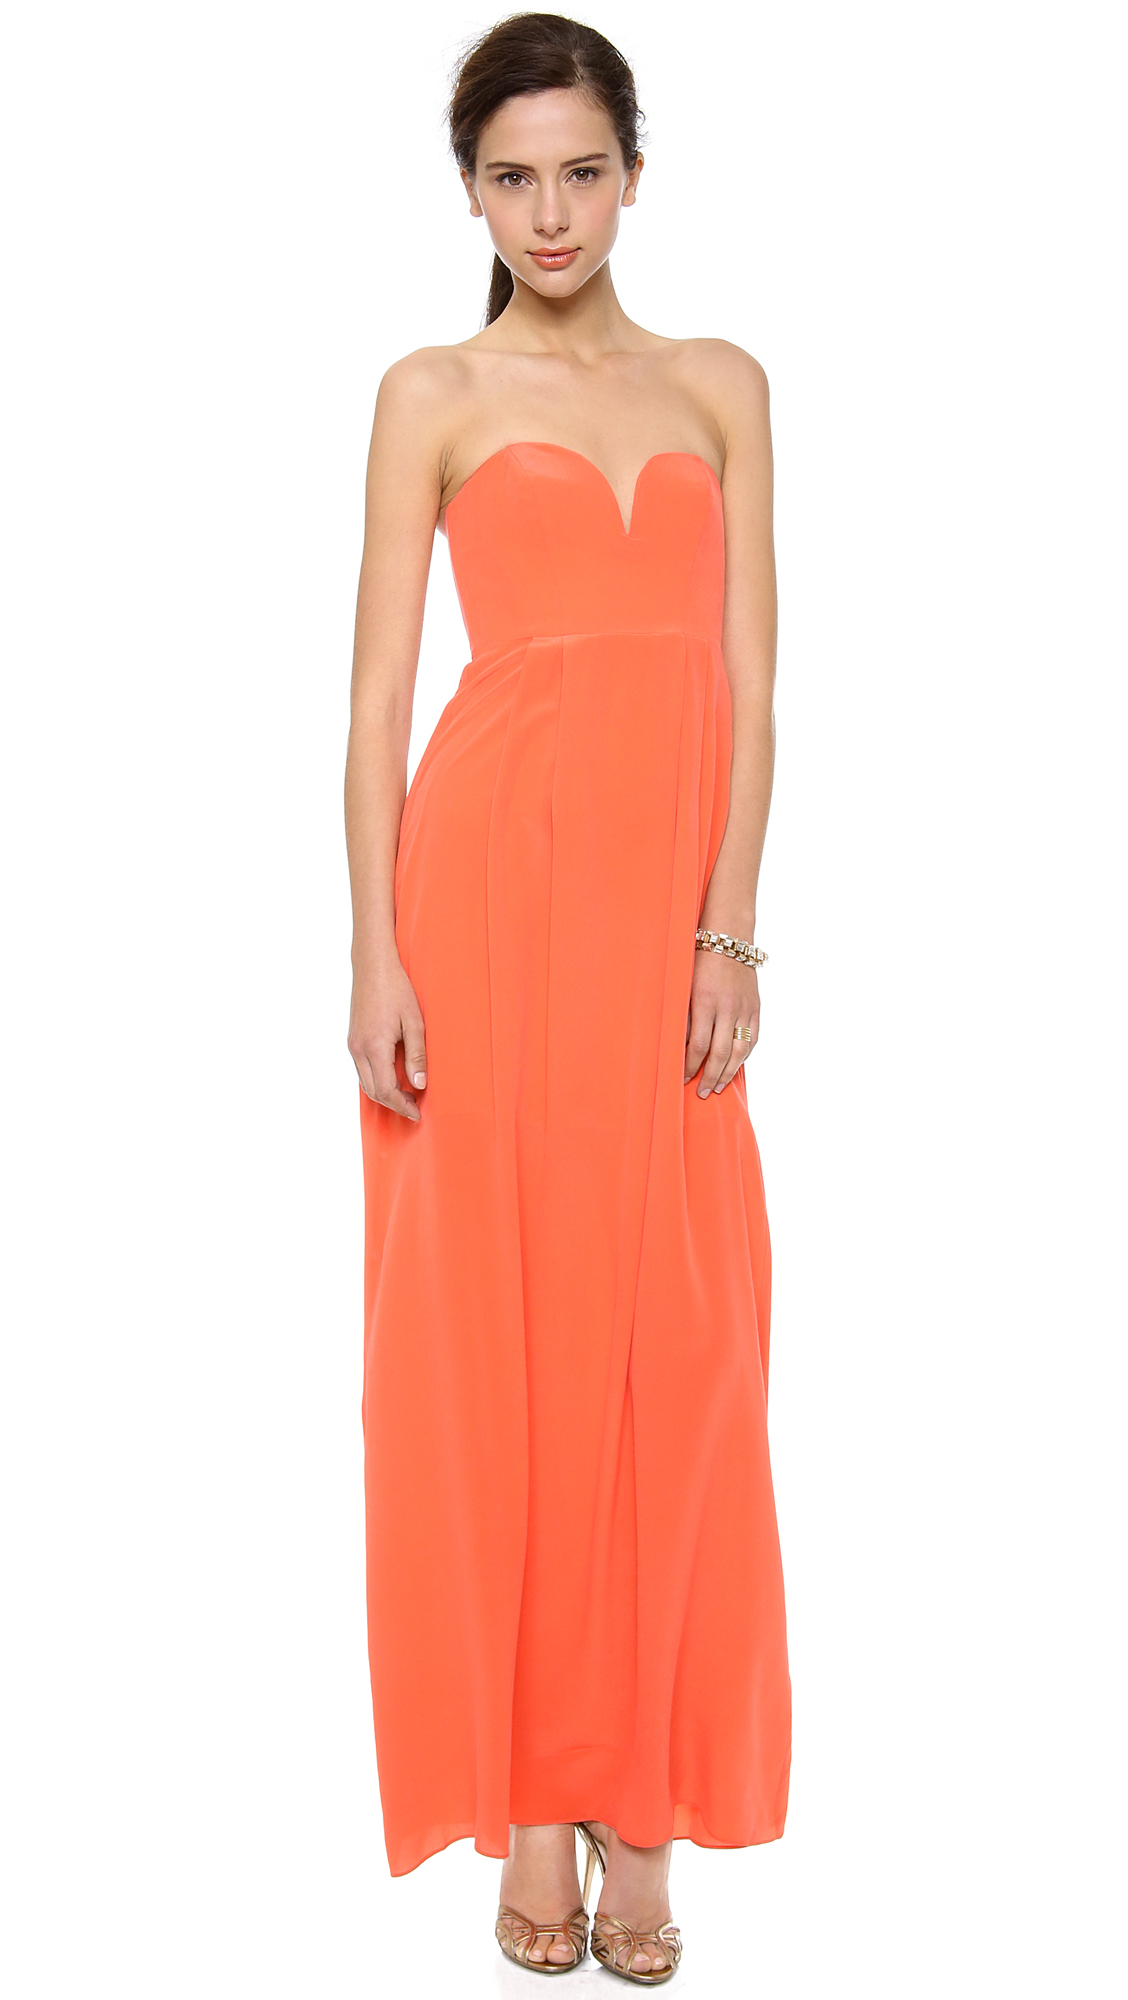 Zimmermann Strapless Maxi Dress in Orange | Lyst